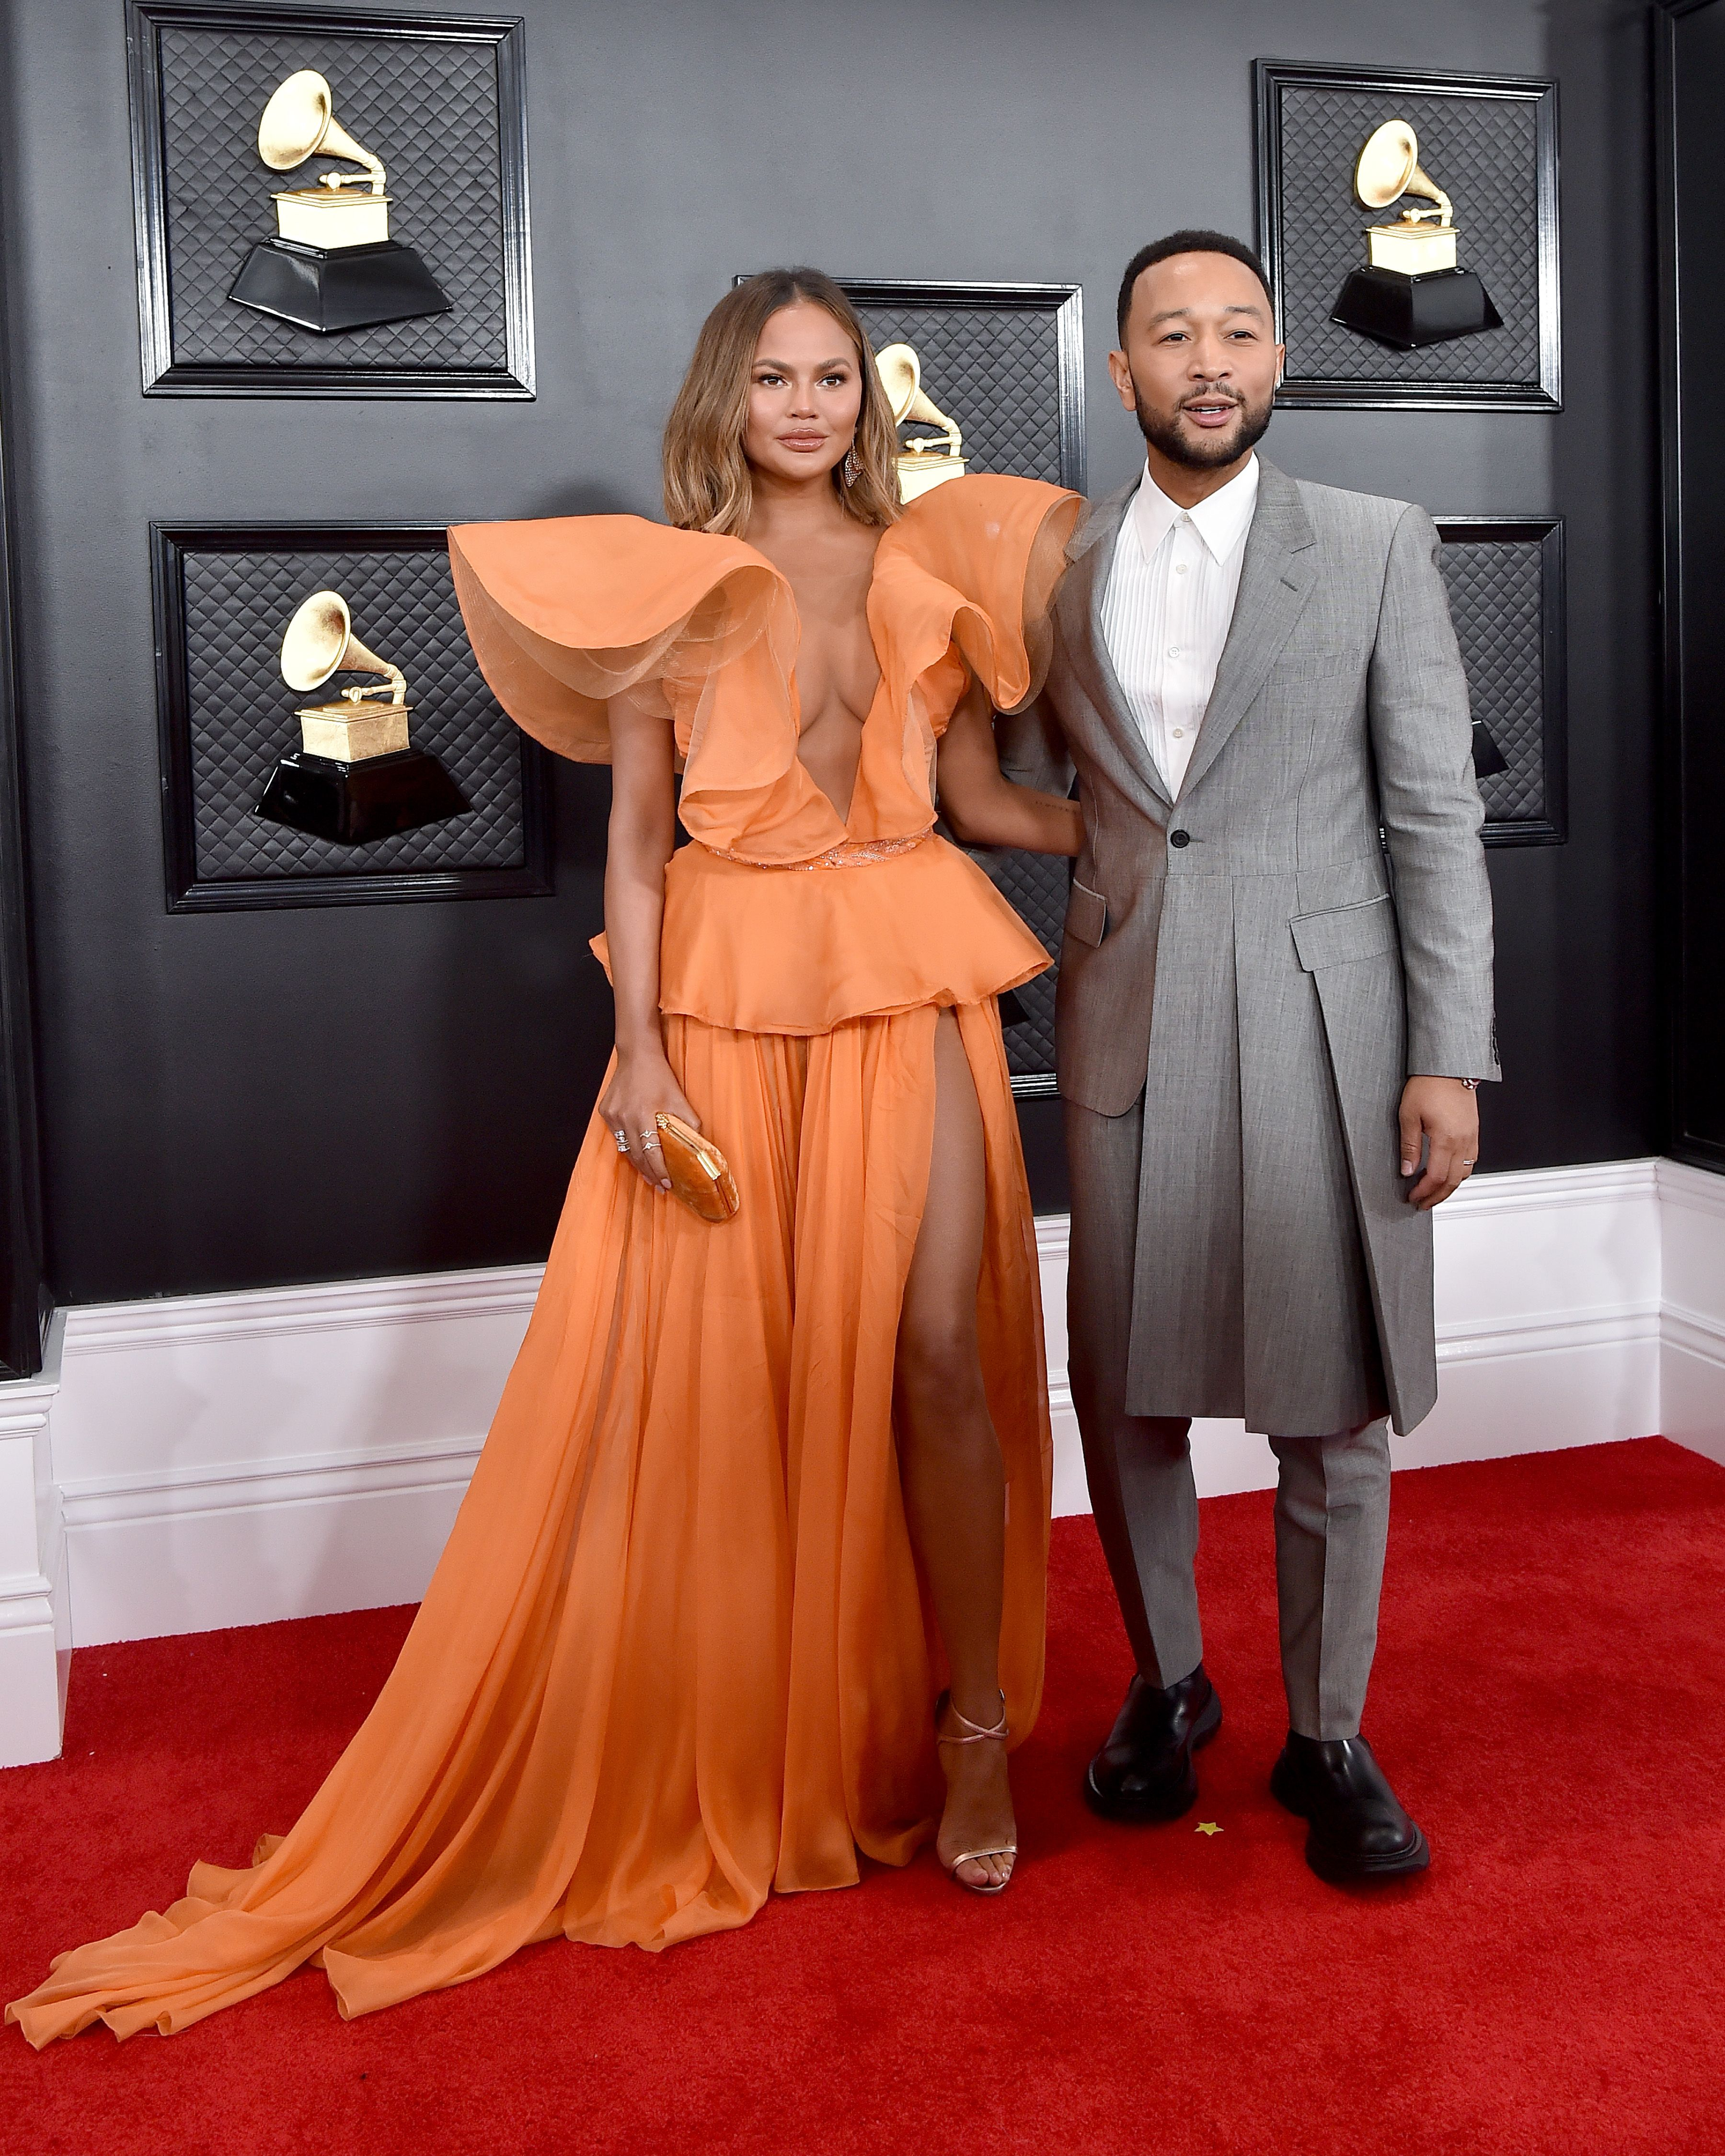 Chrissy Teigen and John Legend walk the red carpet during the 62nd Annual Grammy Awards at Staples Center on January 26, 2020 in Los Angeles, California. | Source: Getty Images